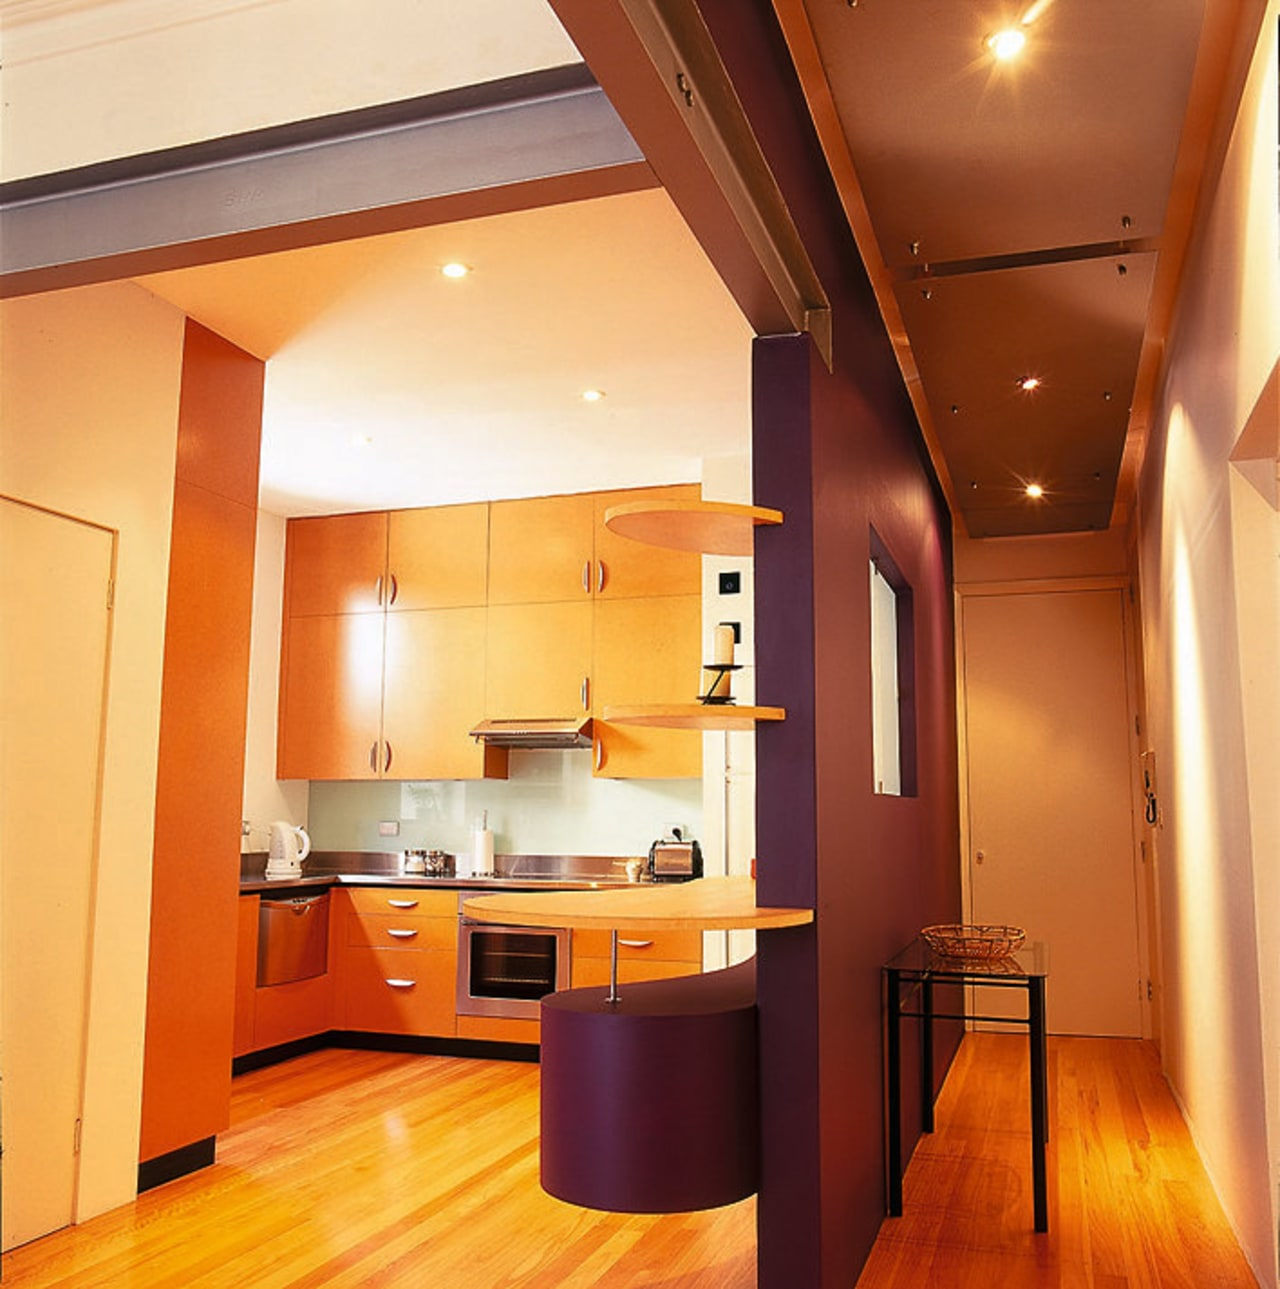 View of the hall & kitchen architecture, cabinetry, ceiling, countertop, floor, flooring, hardwood, interior design, kitchen, lighting, real estate, room, wood flooring, orange, red